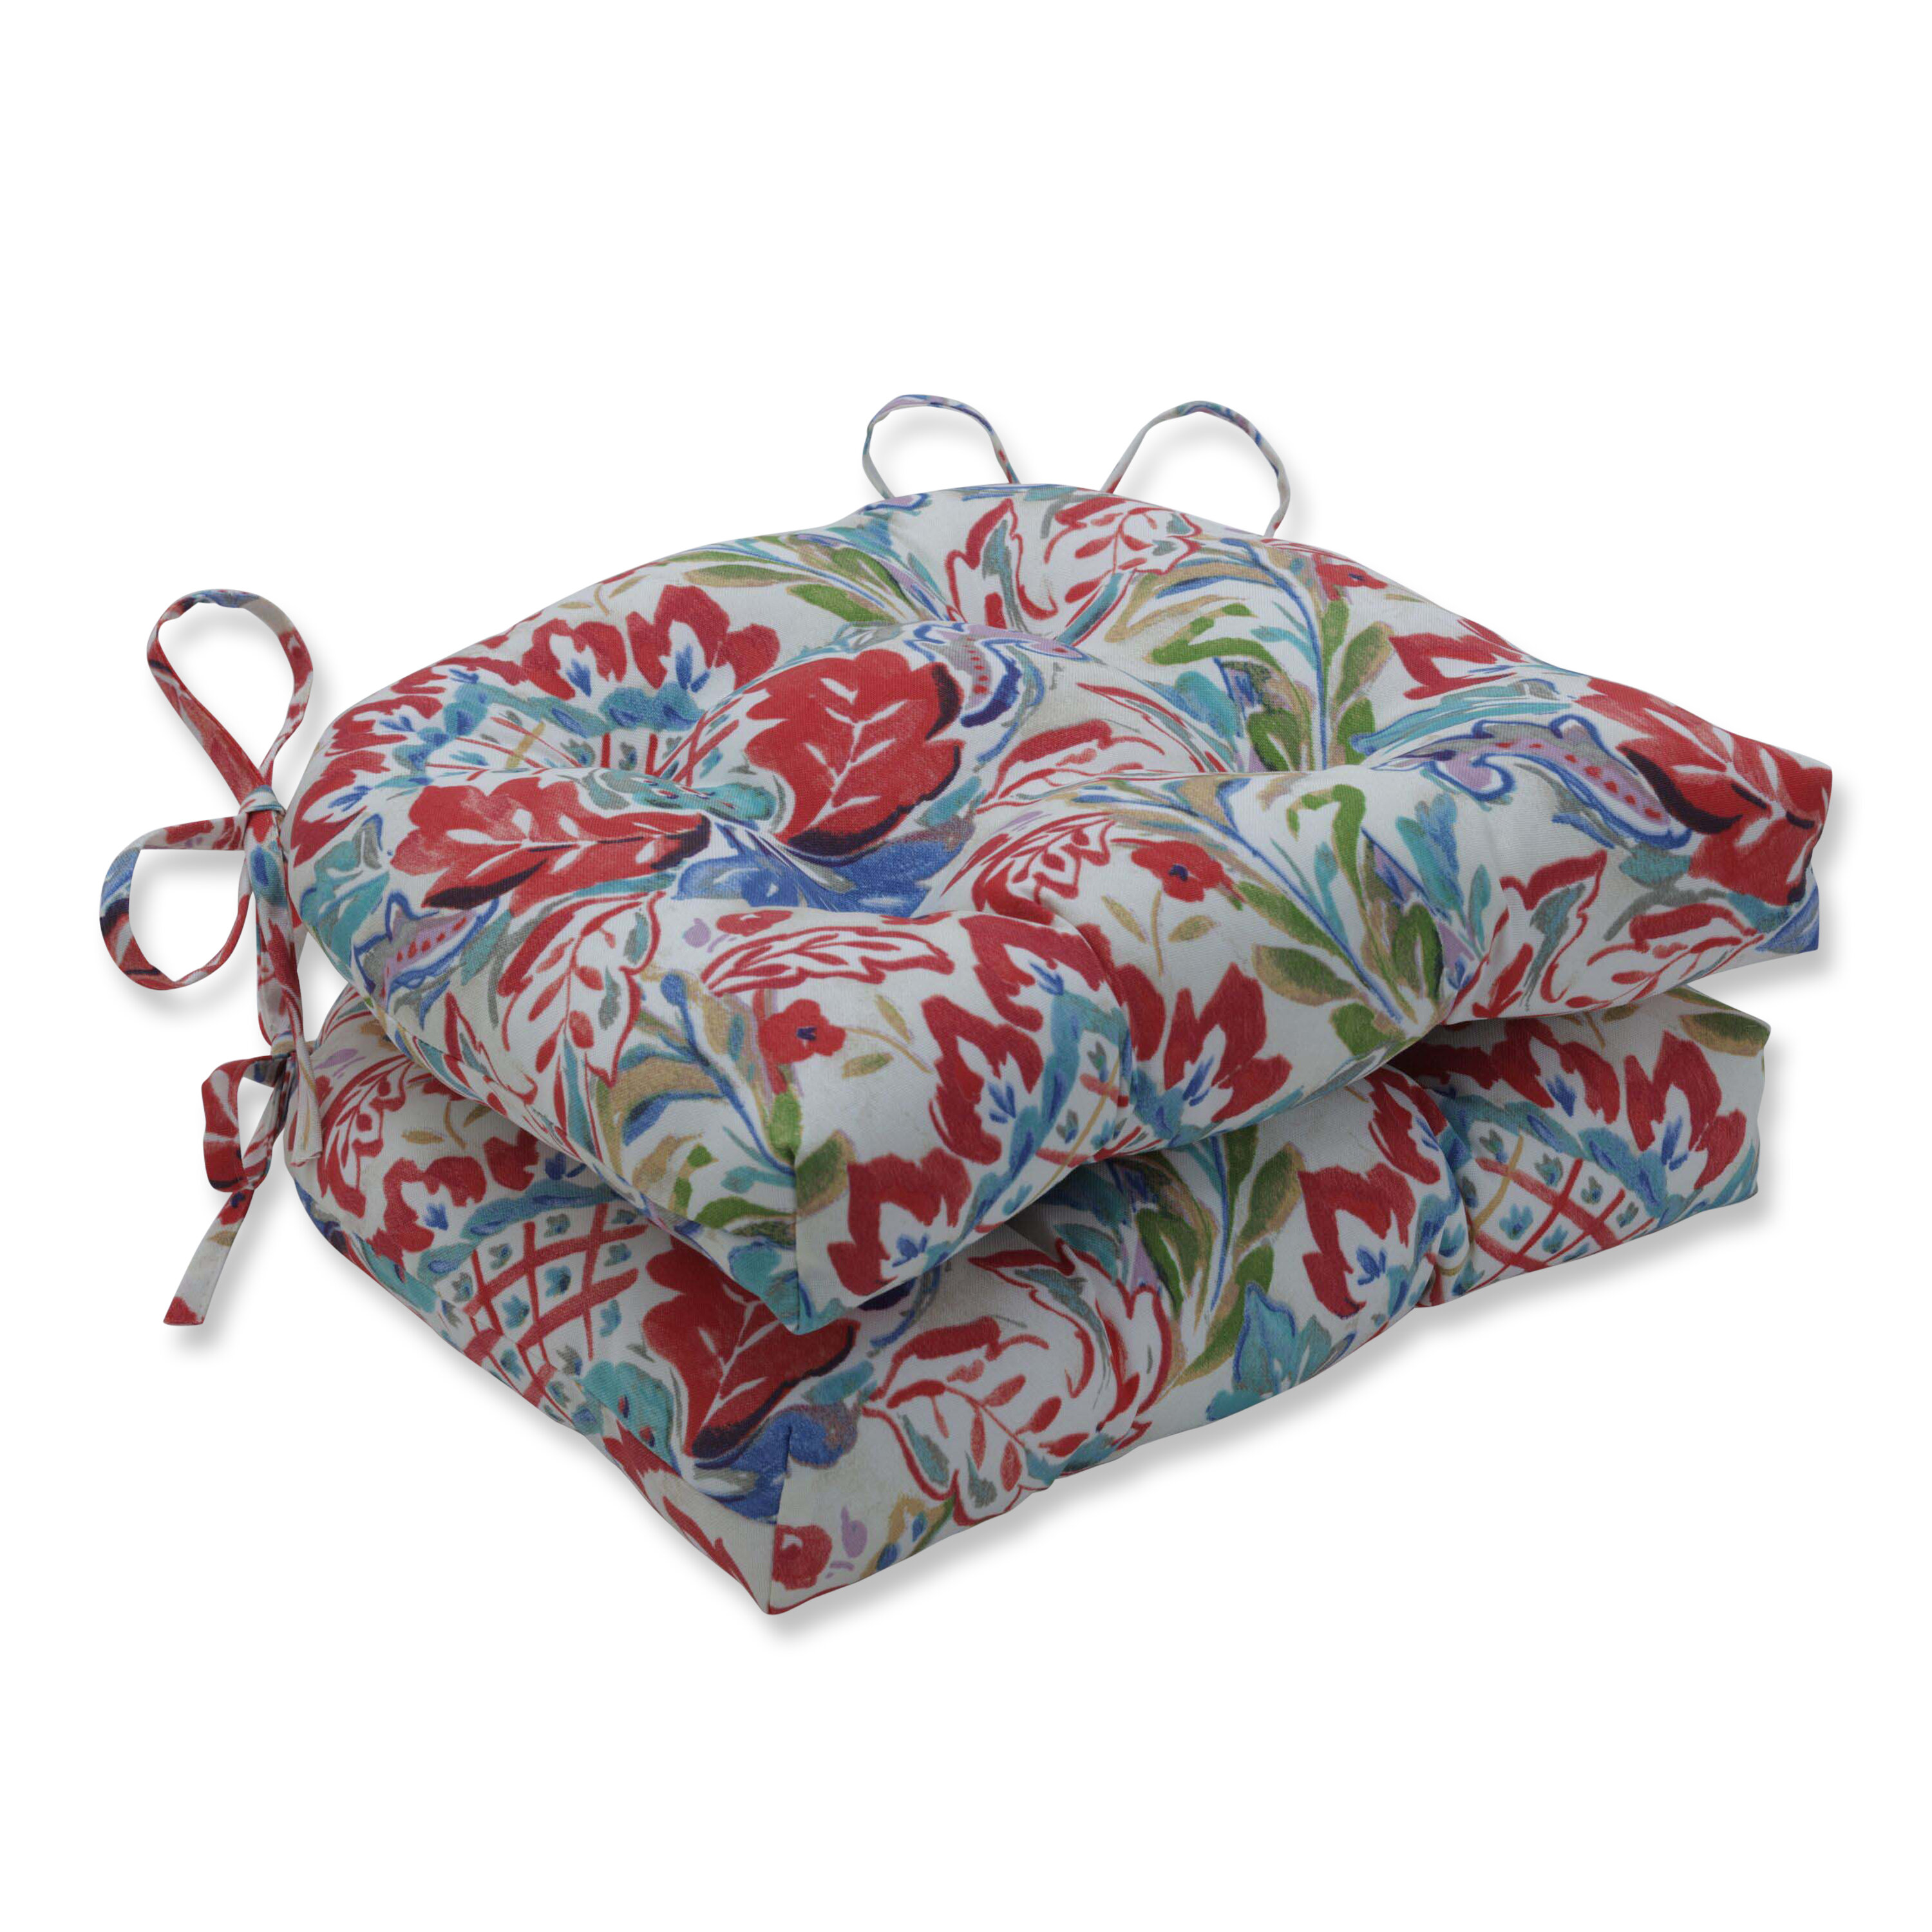 Charlton Home Crew Park Flying Reversible Indoor Outdoor Dining Chair Cushion Wayfair